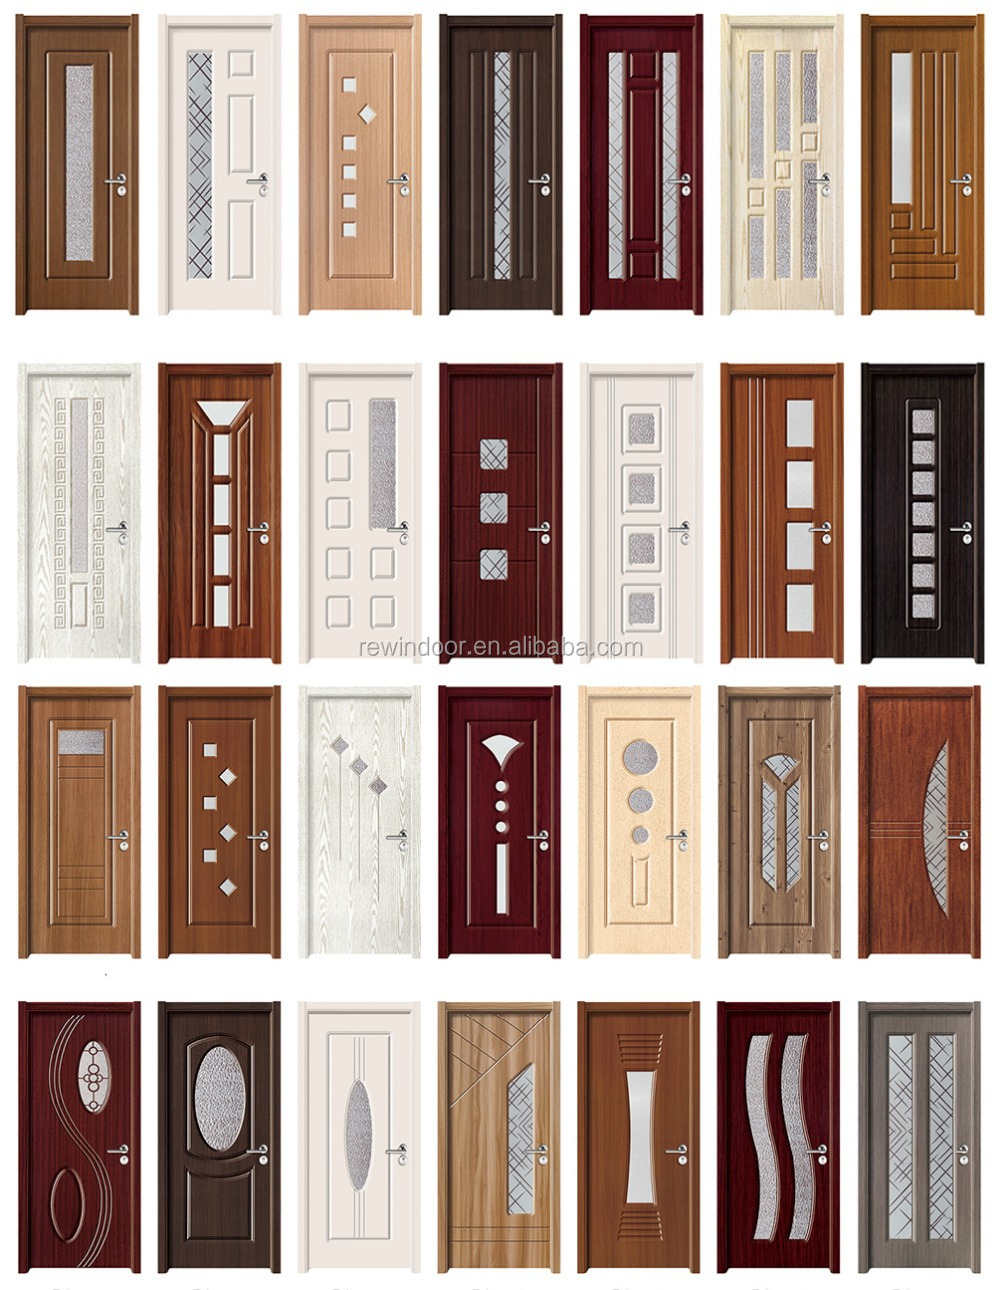 Anti Theft New Design Wooden Mosquito Net Door Design Buy Wooden Mosquito Net Door Design